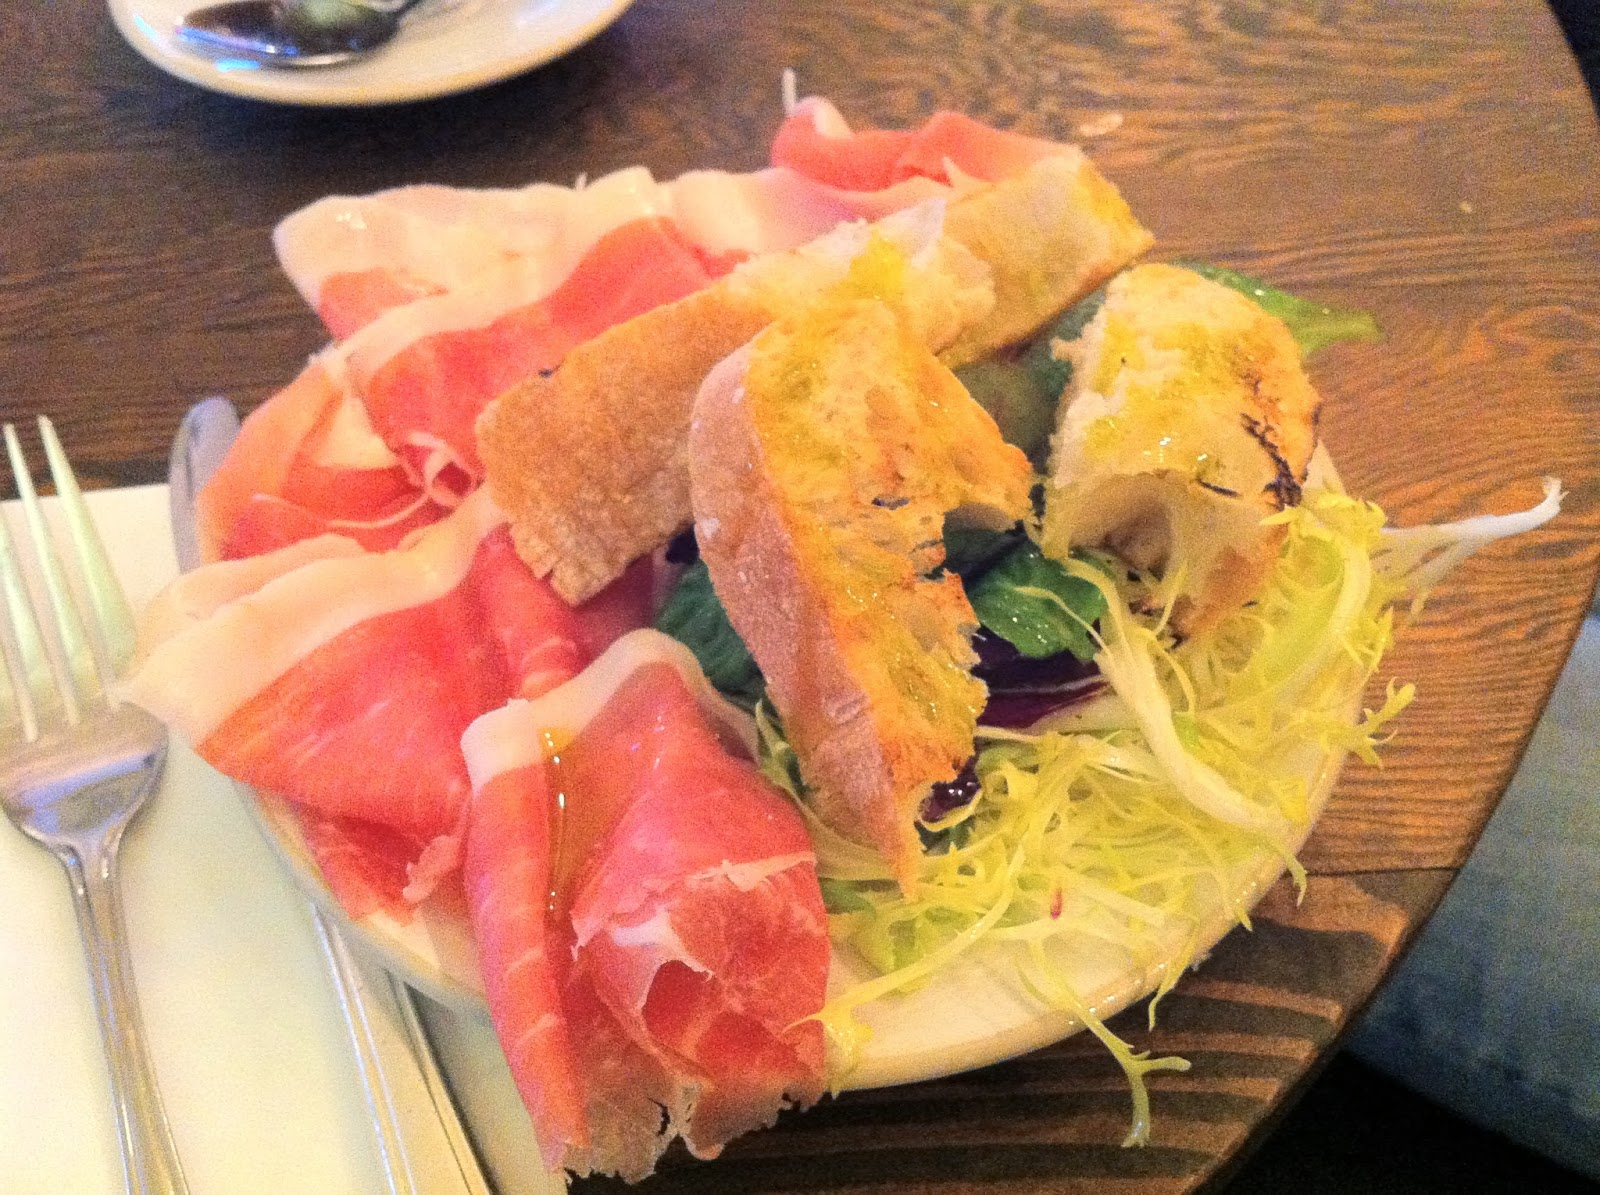 Paesan+Exmouth+Market+review+parma+ham